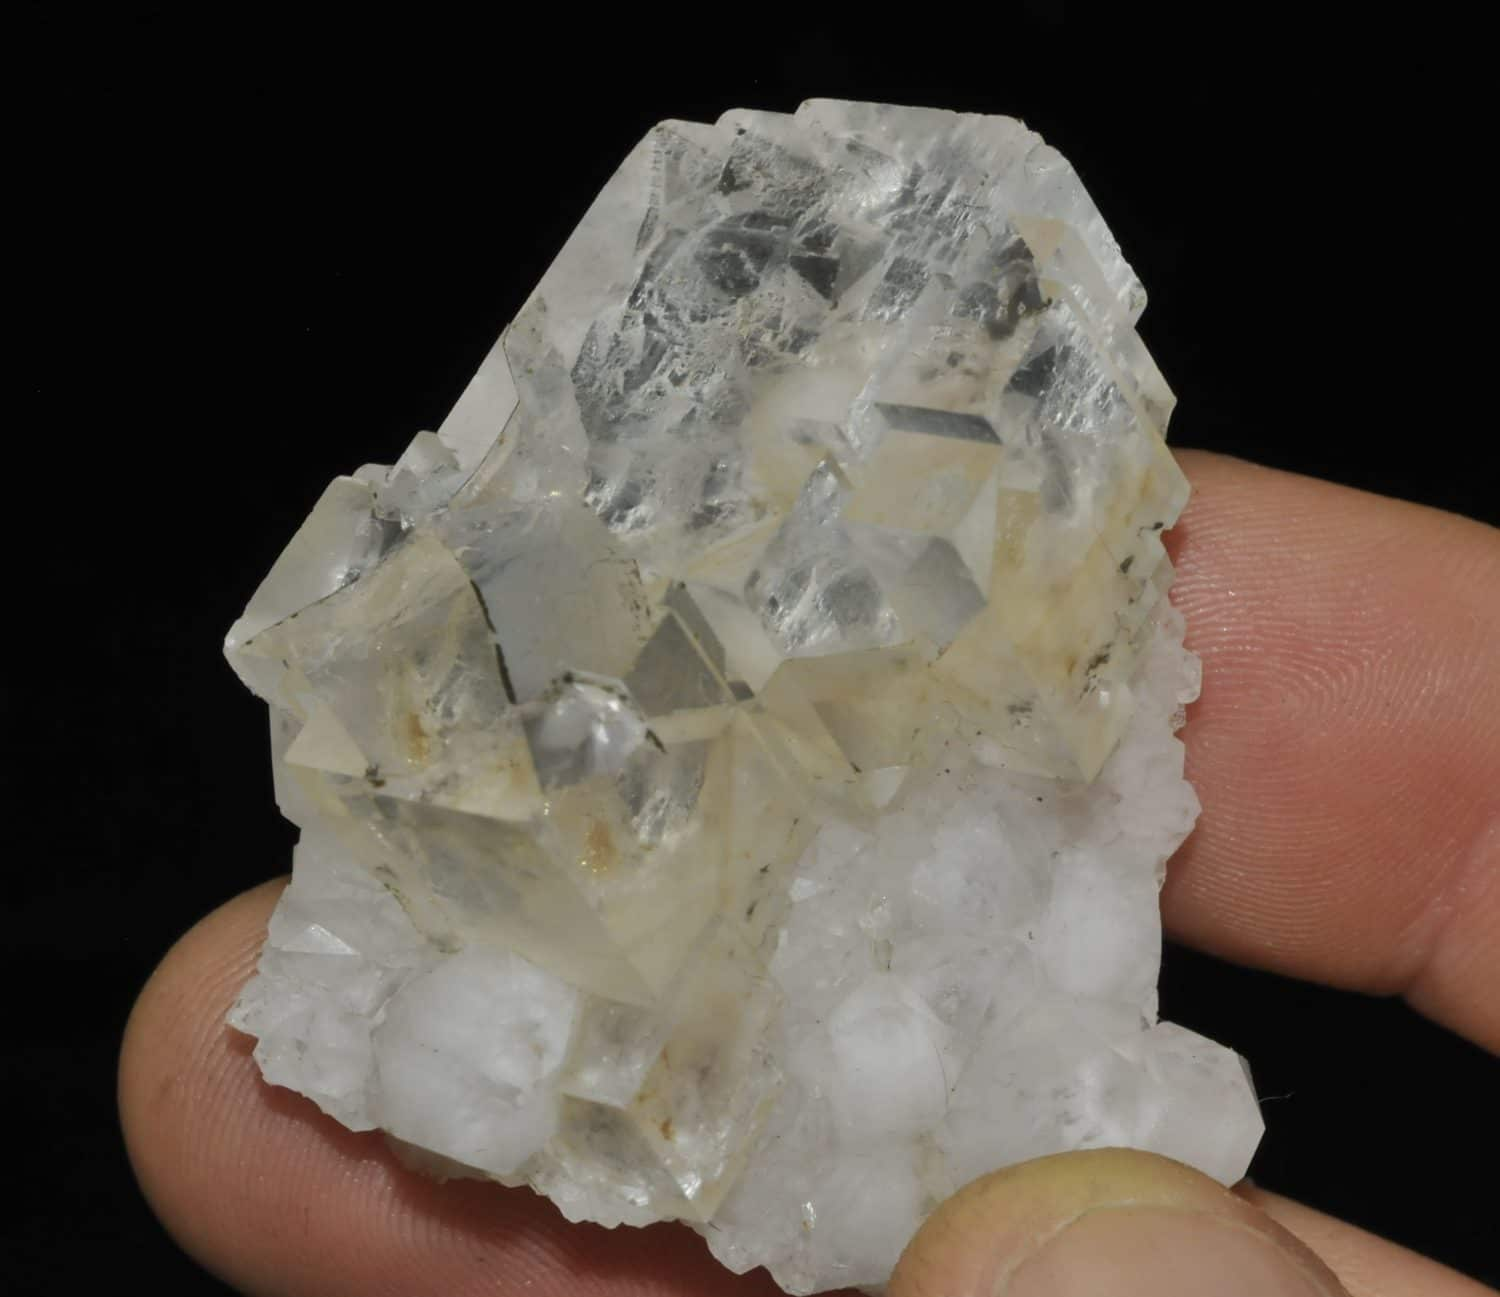 White fluorite from the Montroc mine (Tarn, France)